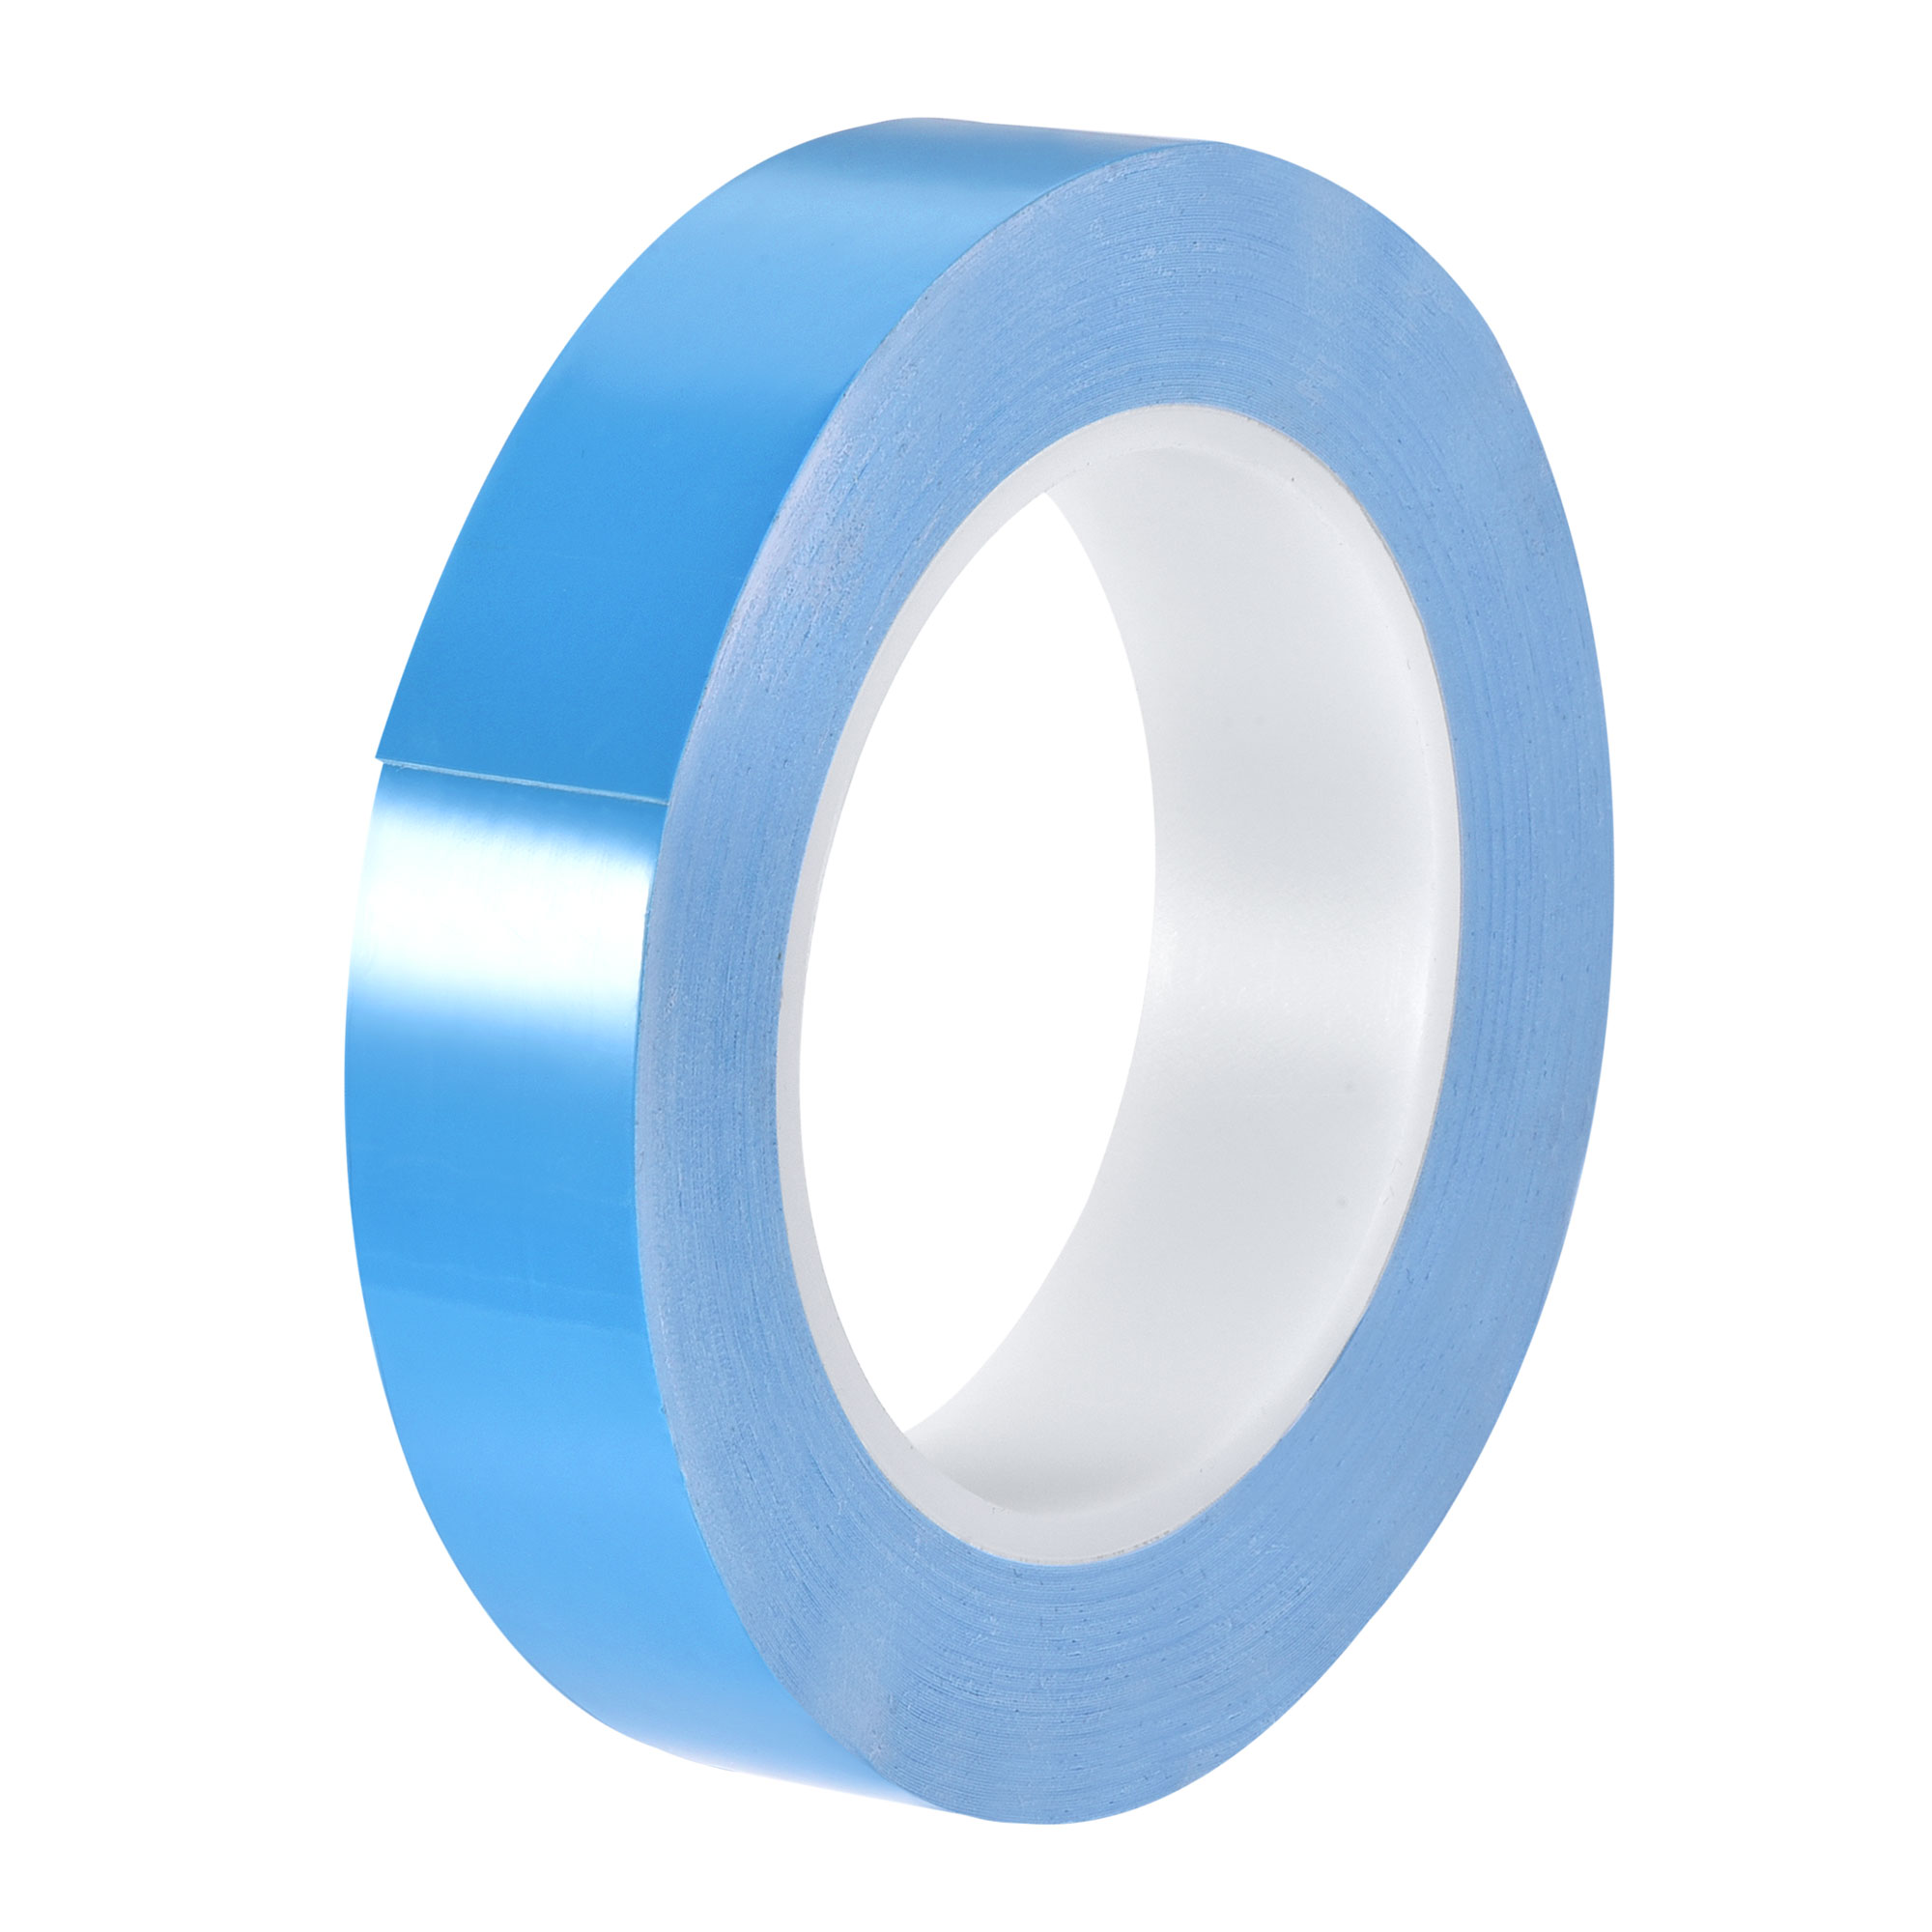 Thermal Adhesive Tape Thermally Conductive Tape 10mm x 25m for LED Strips